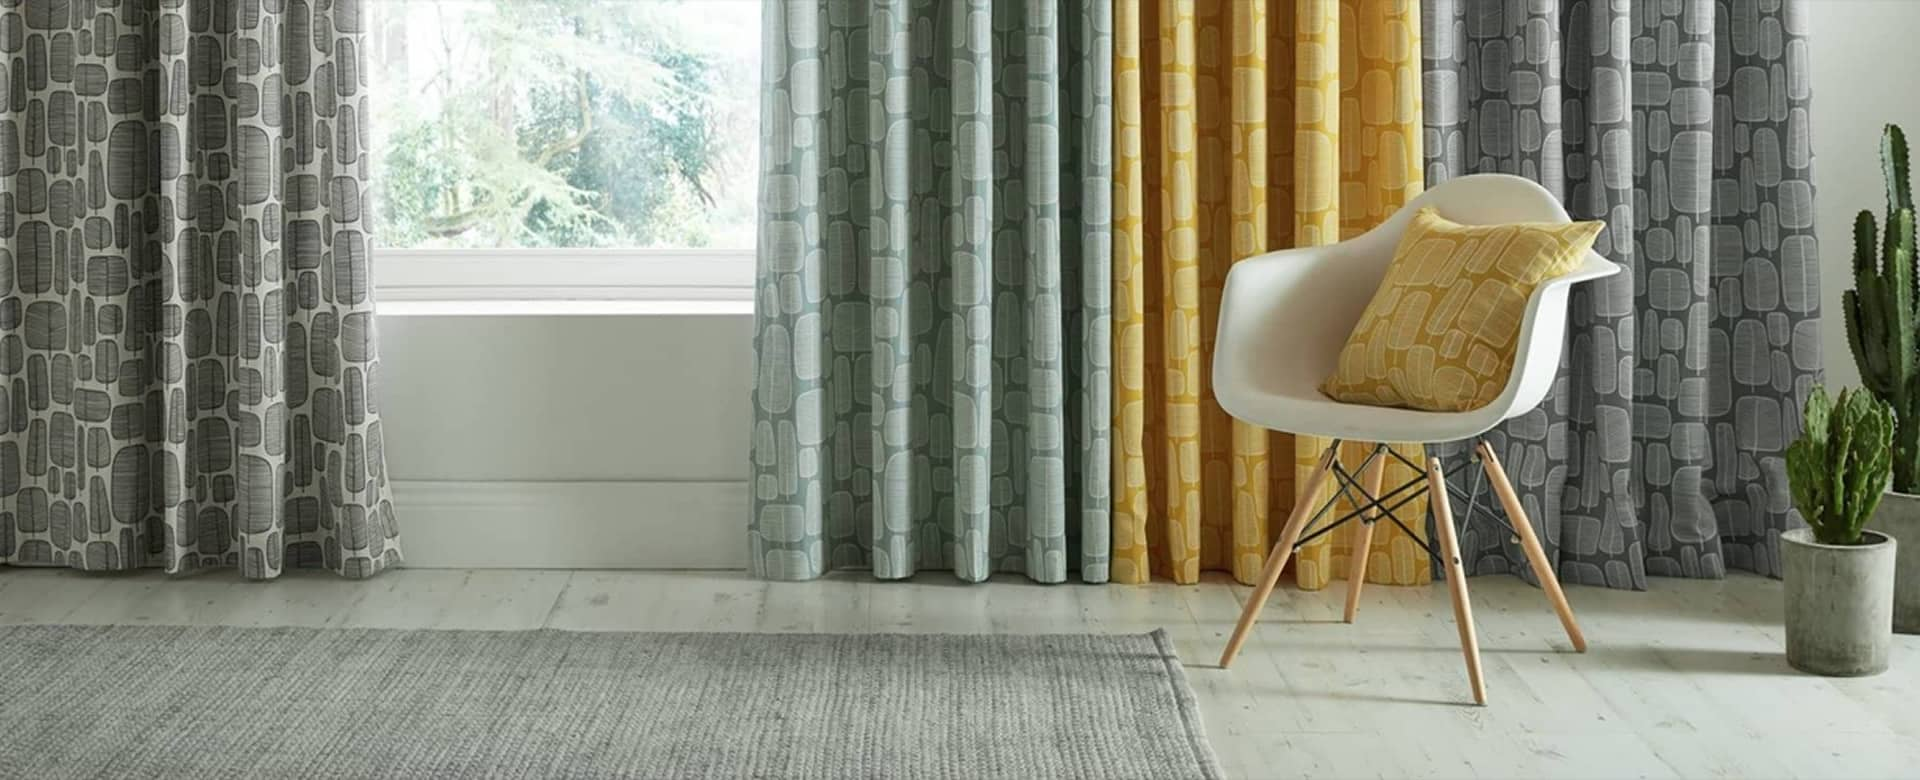 MissPrint® range of Made to Measure Curtains & Blinds